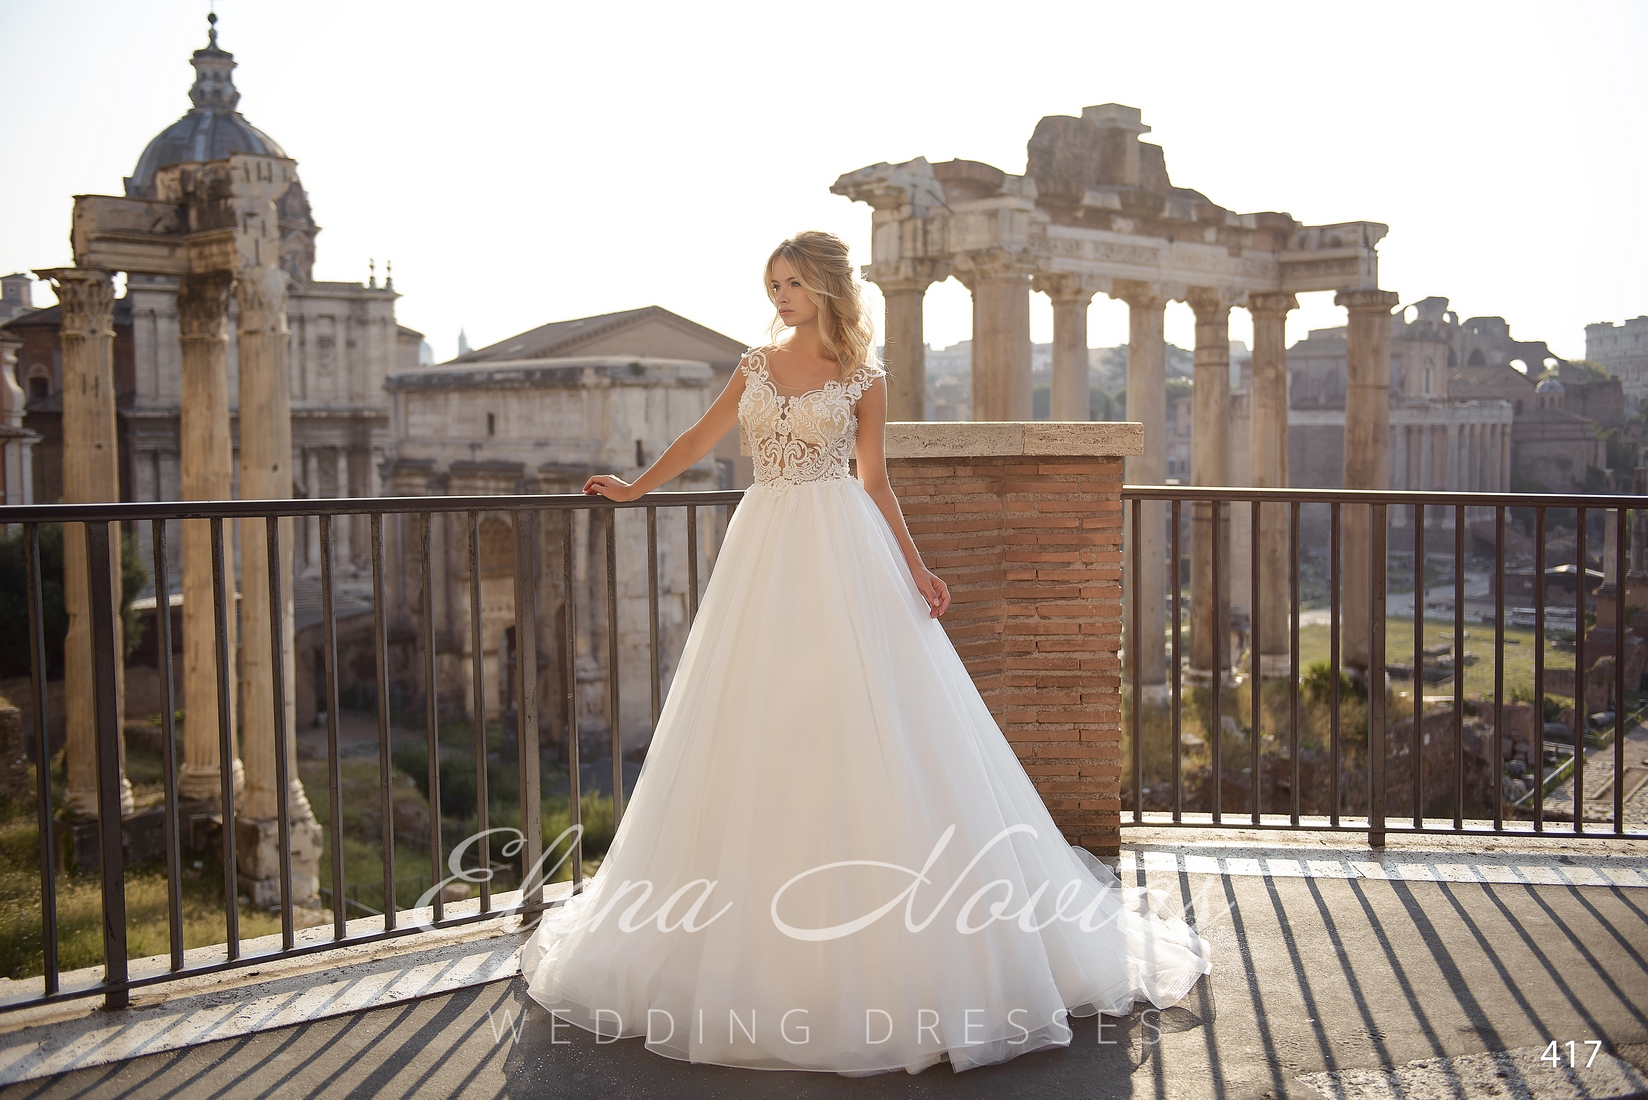 Wedding dress wholesale 417